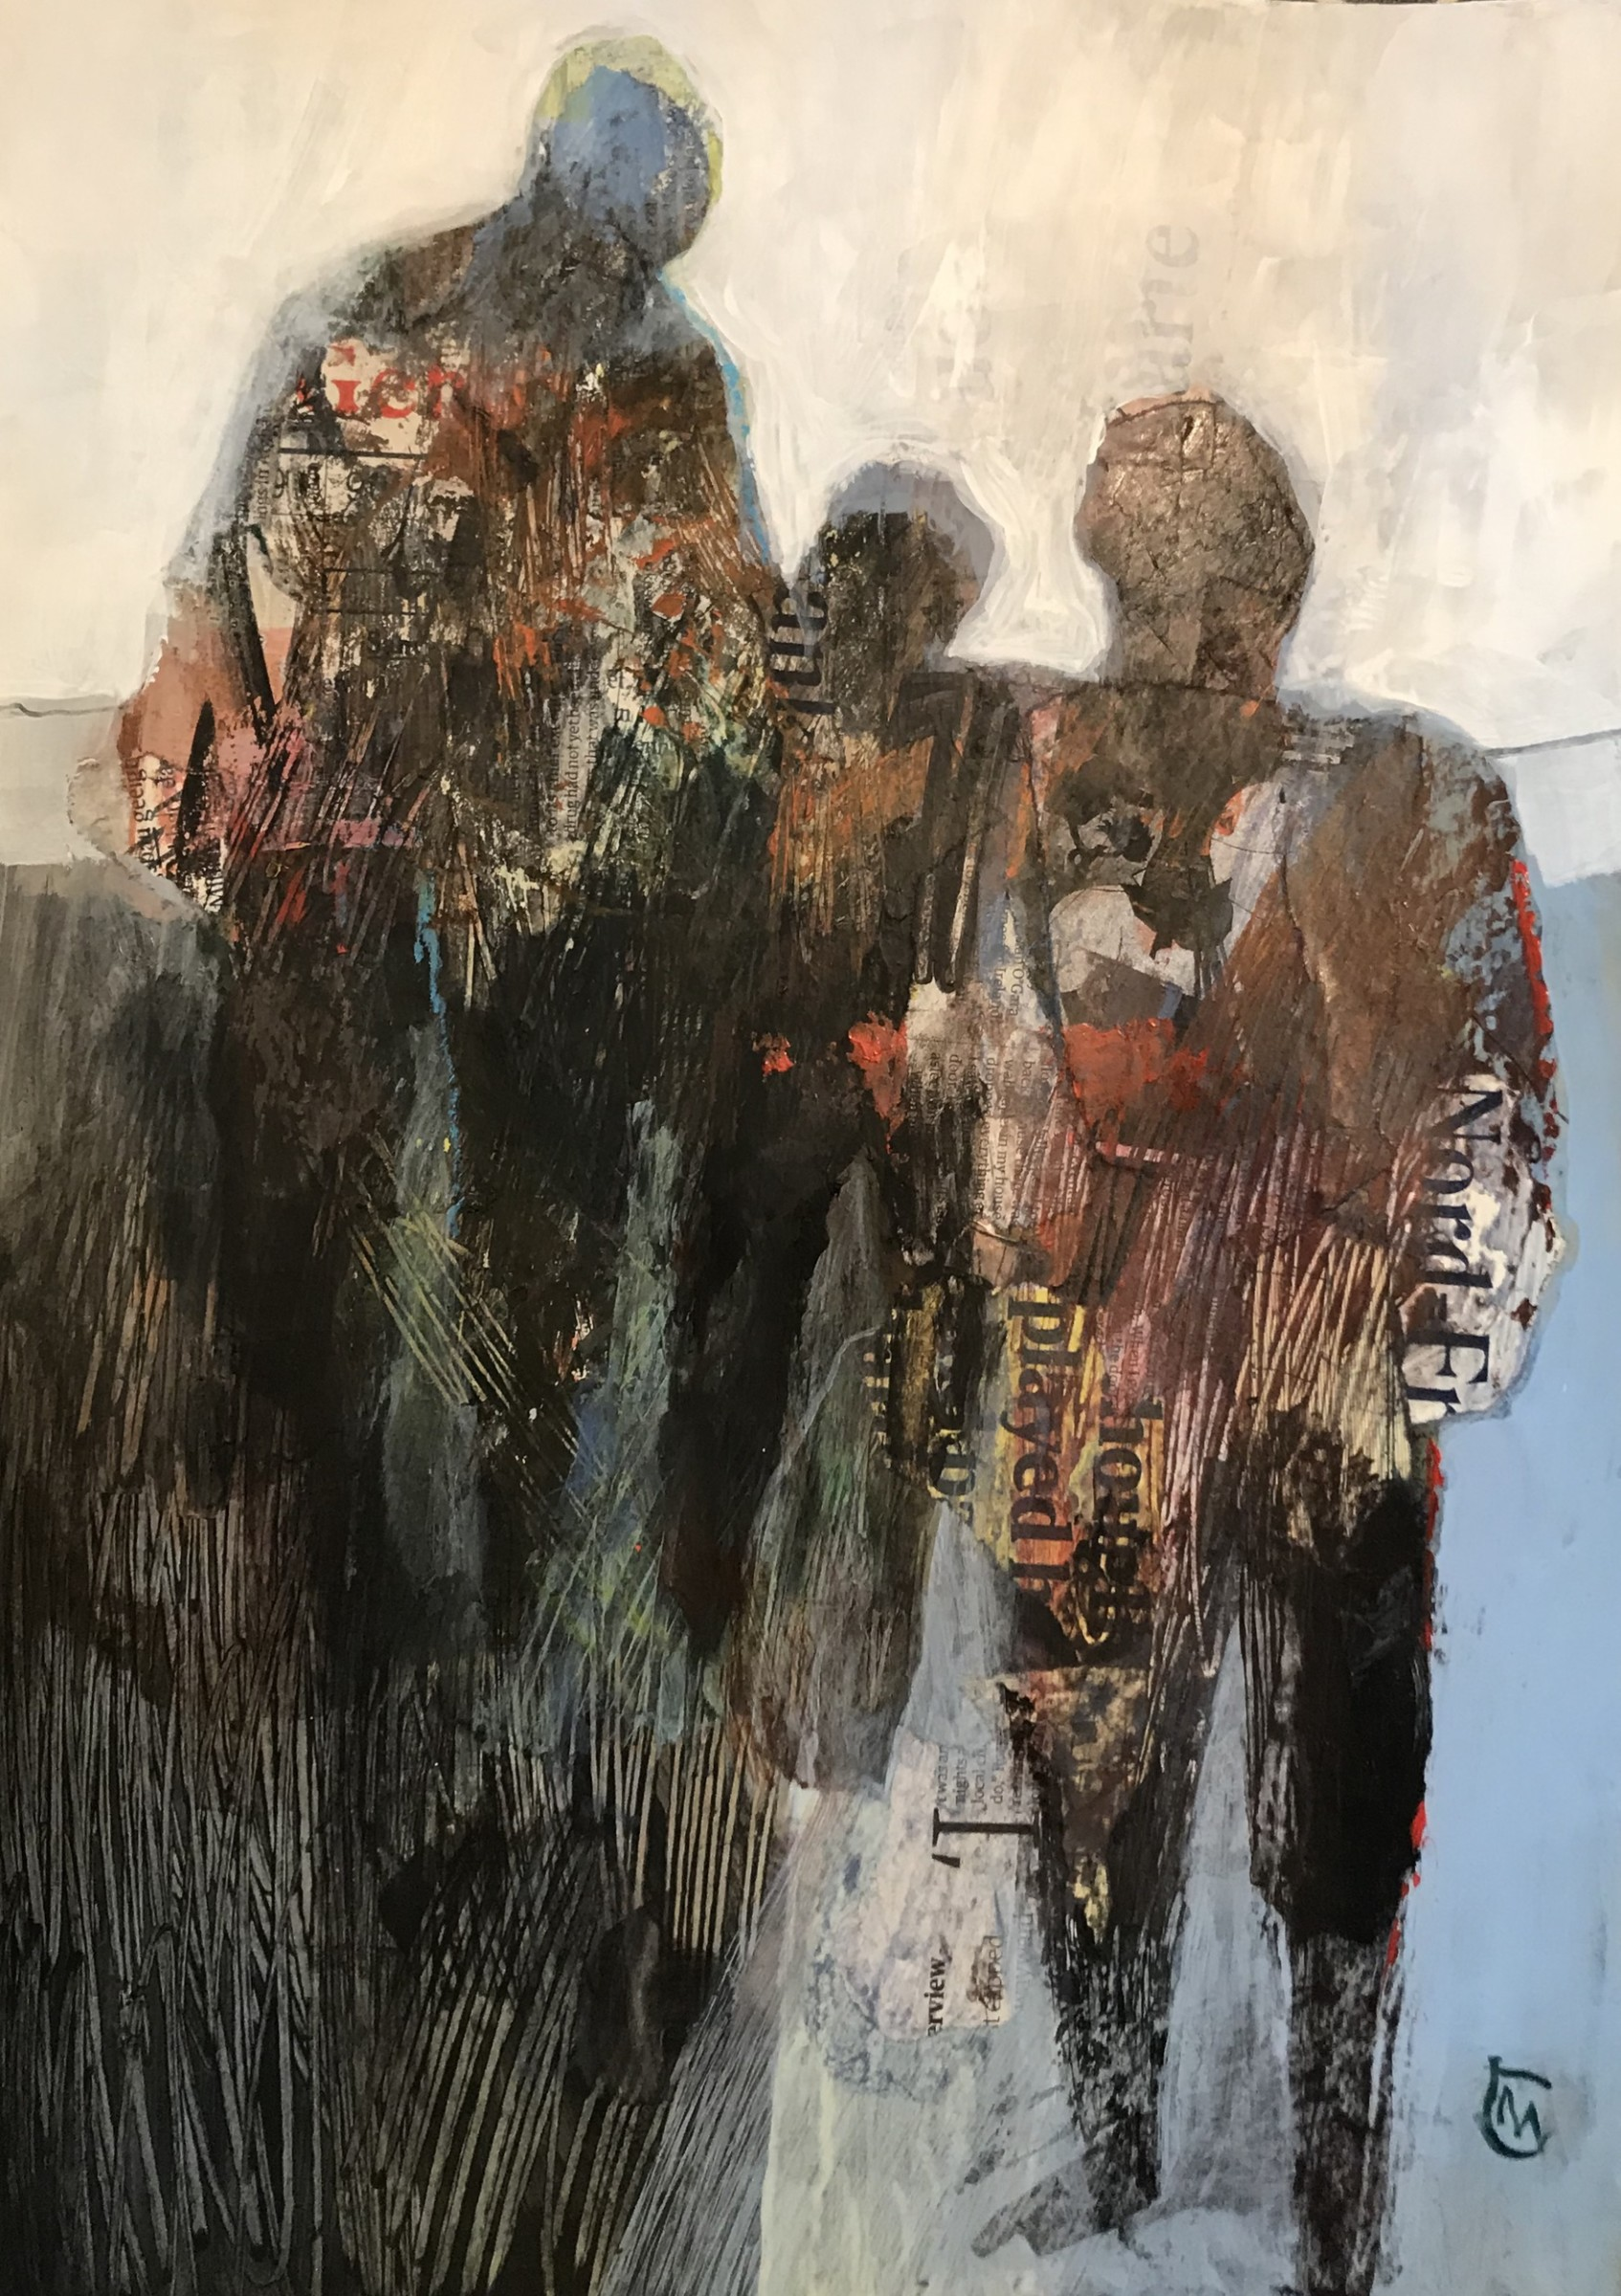 """<span class=""""link fancybox-details-link""""><a href=""""/artists/83-colin-merrin/works/12262-colin-merrin-tomorrow/"""">View Detail Page</a></span><div class=""""artist""""><span class=""""artist""""><strong>Colin Merrin</strong></span></div><div class=""""title""""><em>Tomorrow</em></div><div class=""""medium"""">acrylic & collage</div><div class=""""dimensions"""">Frame: 57 x 45 cm<br /> Artwork: 40 x 28 cm</div><div class=""""price"""">£650.00</div>"""